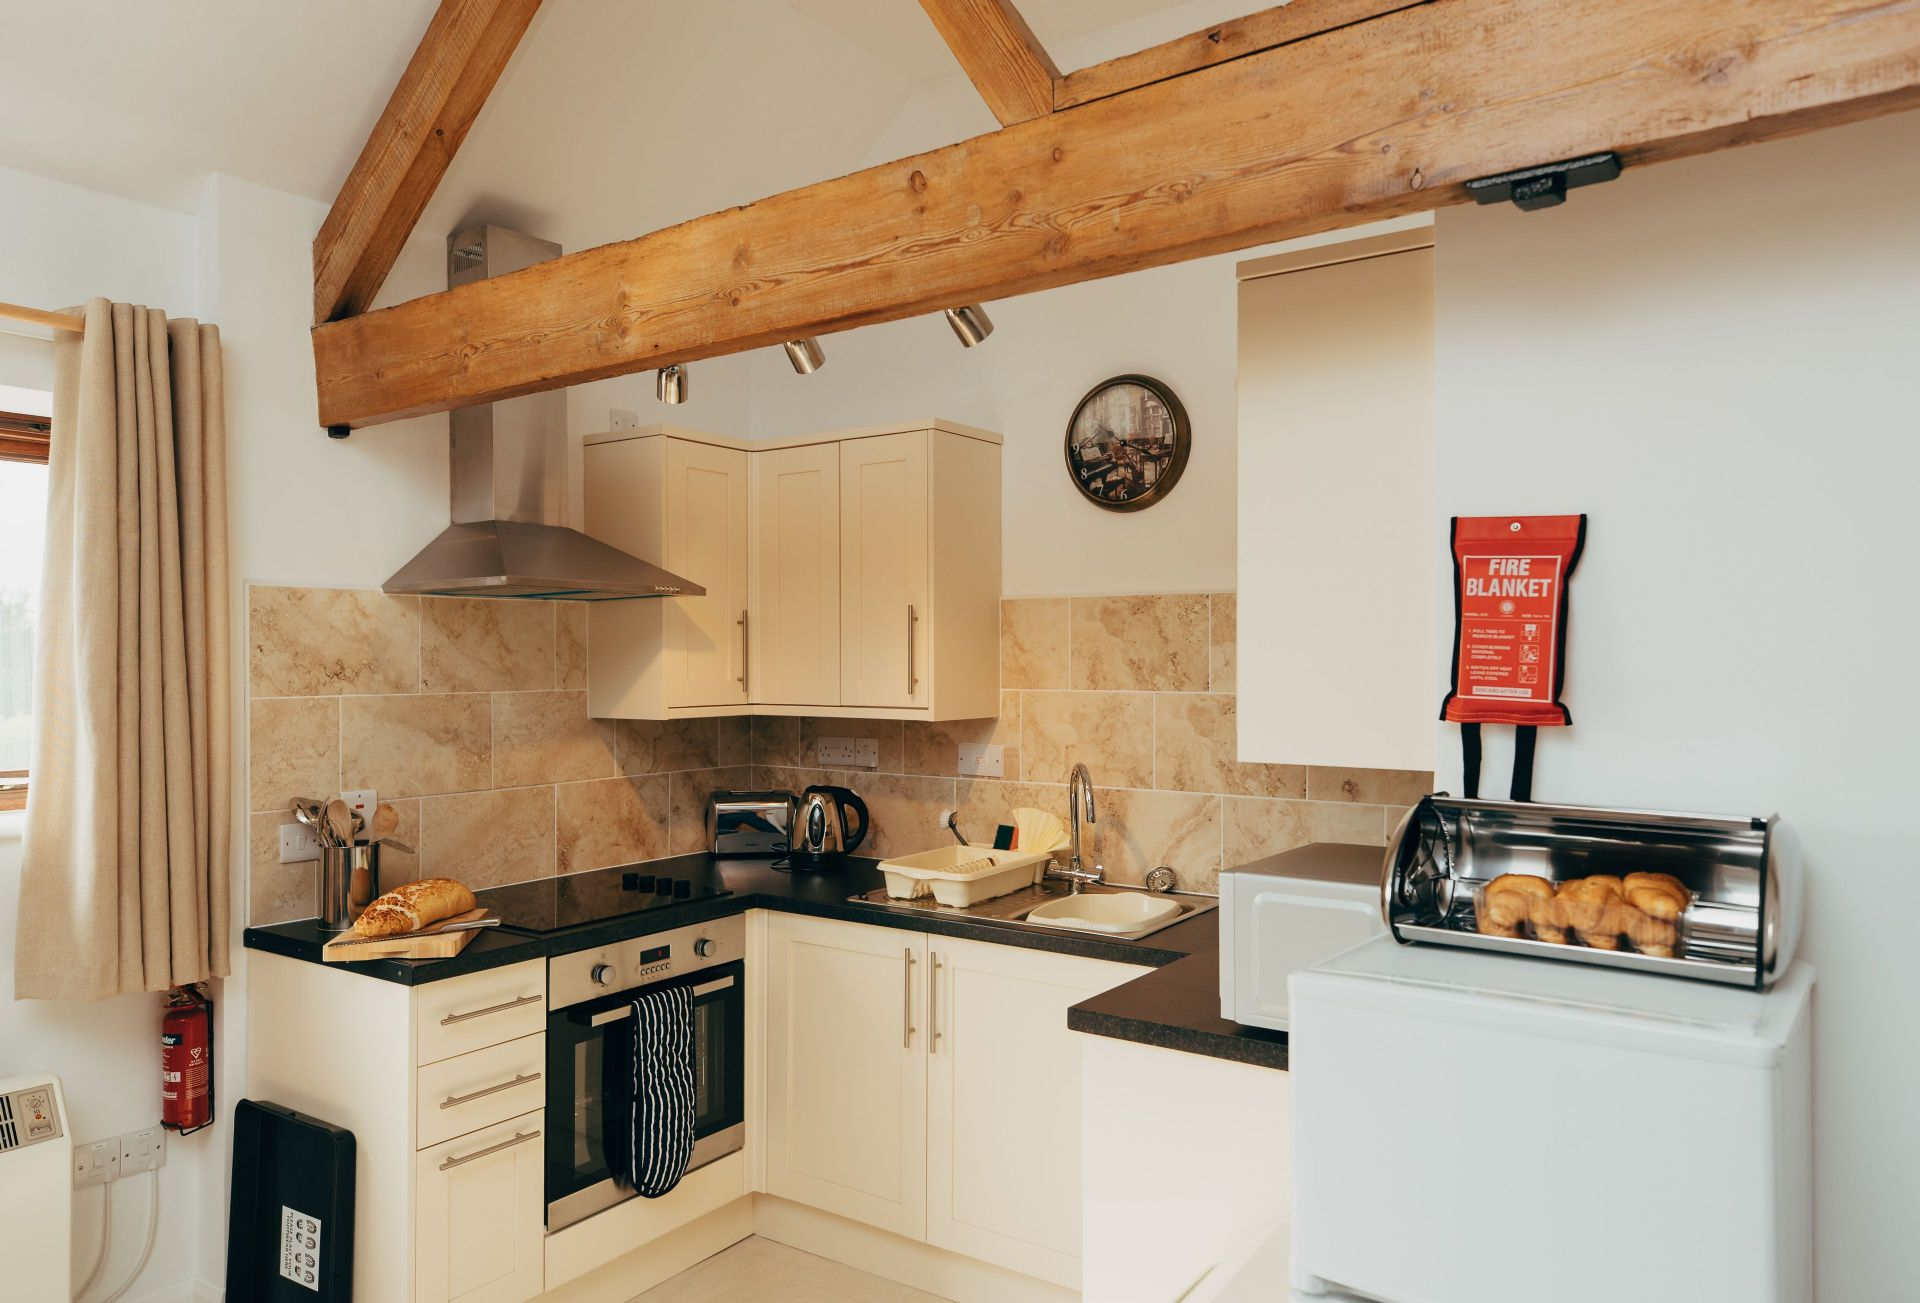 Turnip Cottage is located in Dorchester and surrounding villages